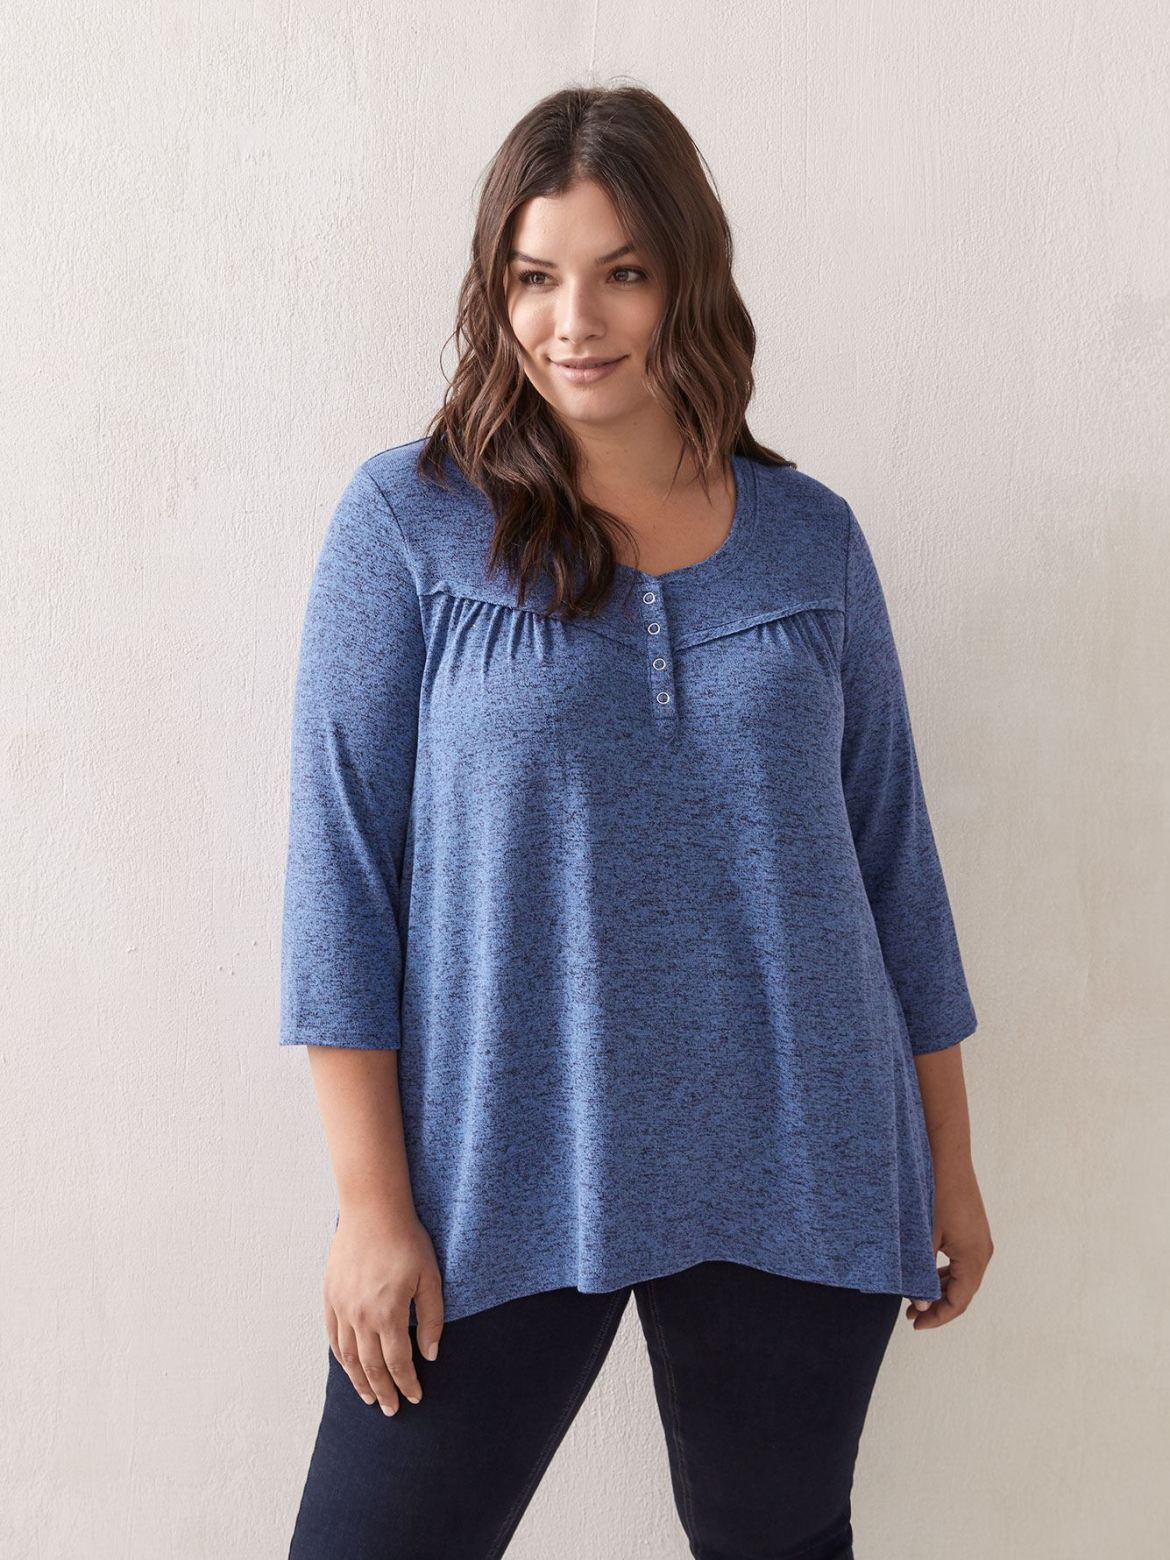 3/4 Sleeve Crew Neck Tunic Top - In Every Story